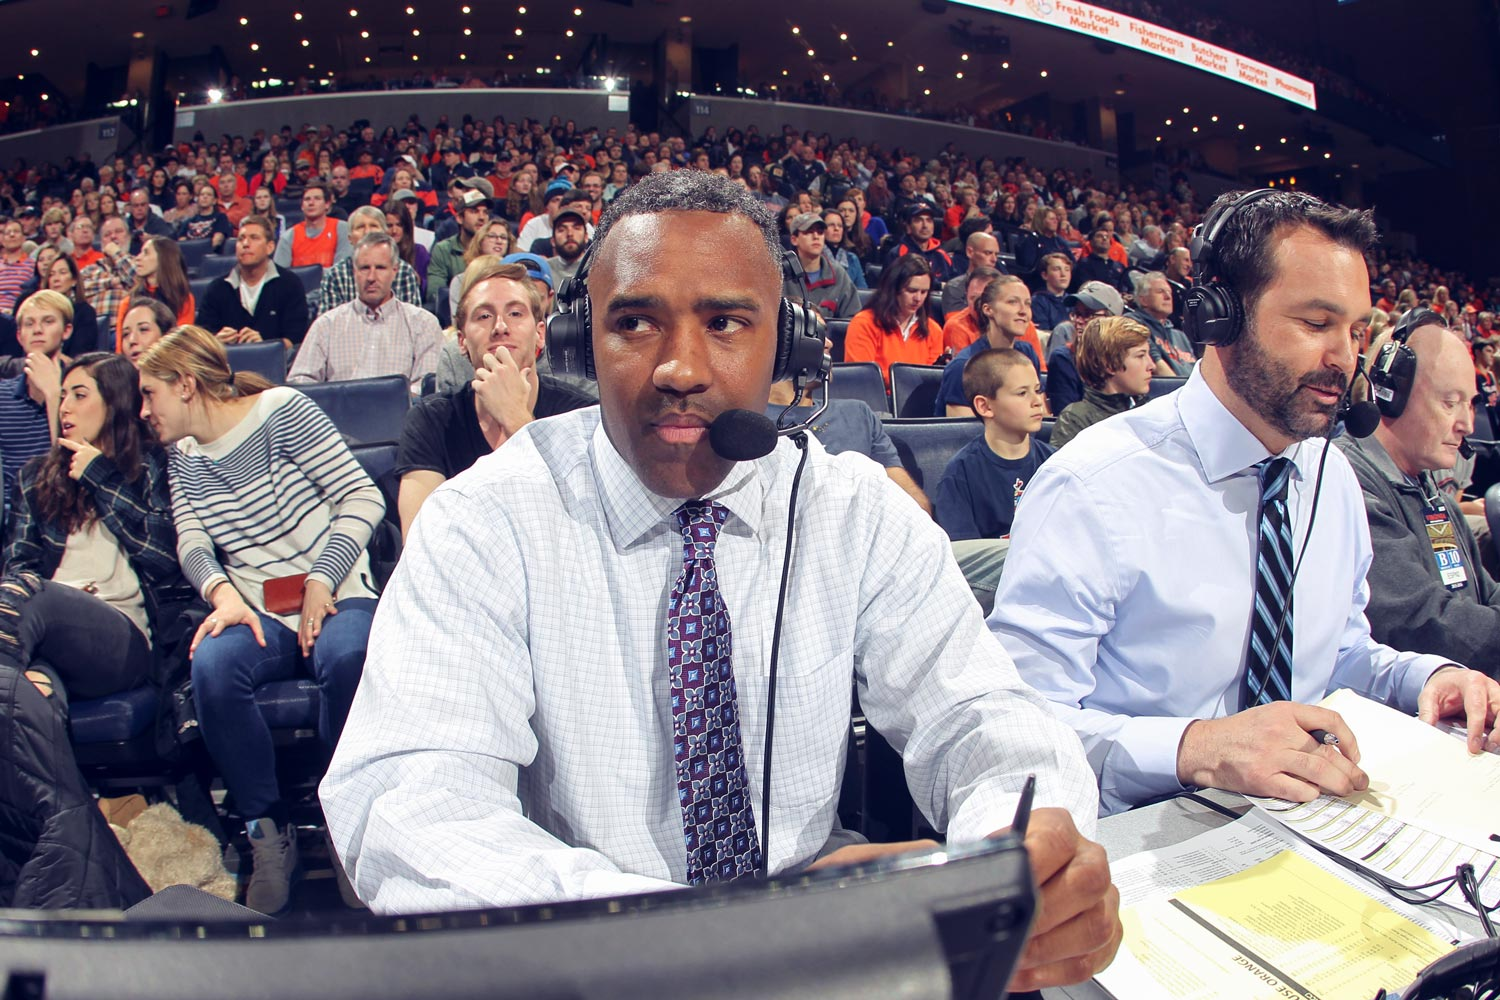 Cory Alexander – part of UVA's 1995 team that made it to the NCAA Tournament's Elite Eight – has since maintained his ties with basketball, as a player, coach and TV commentator.